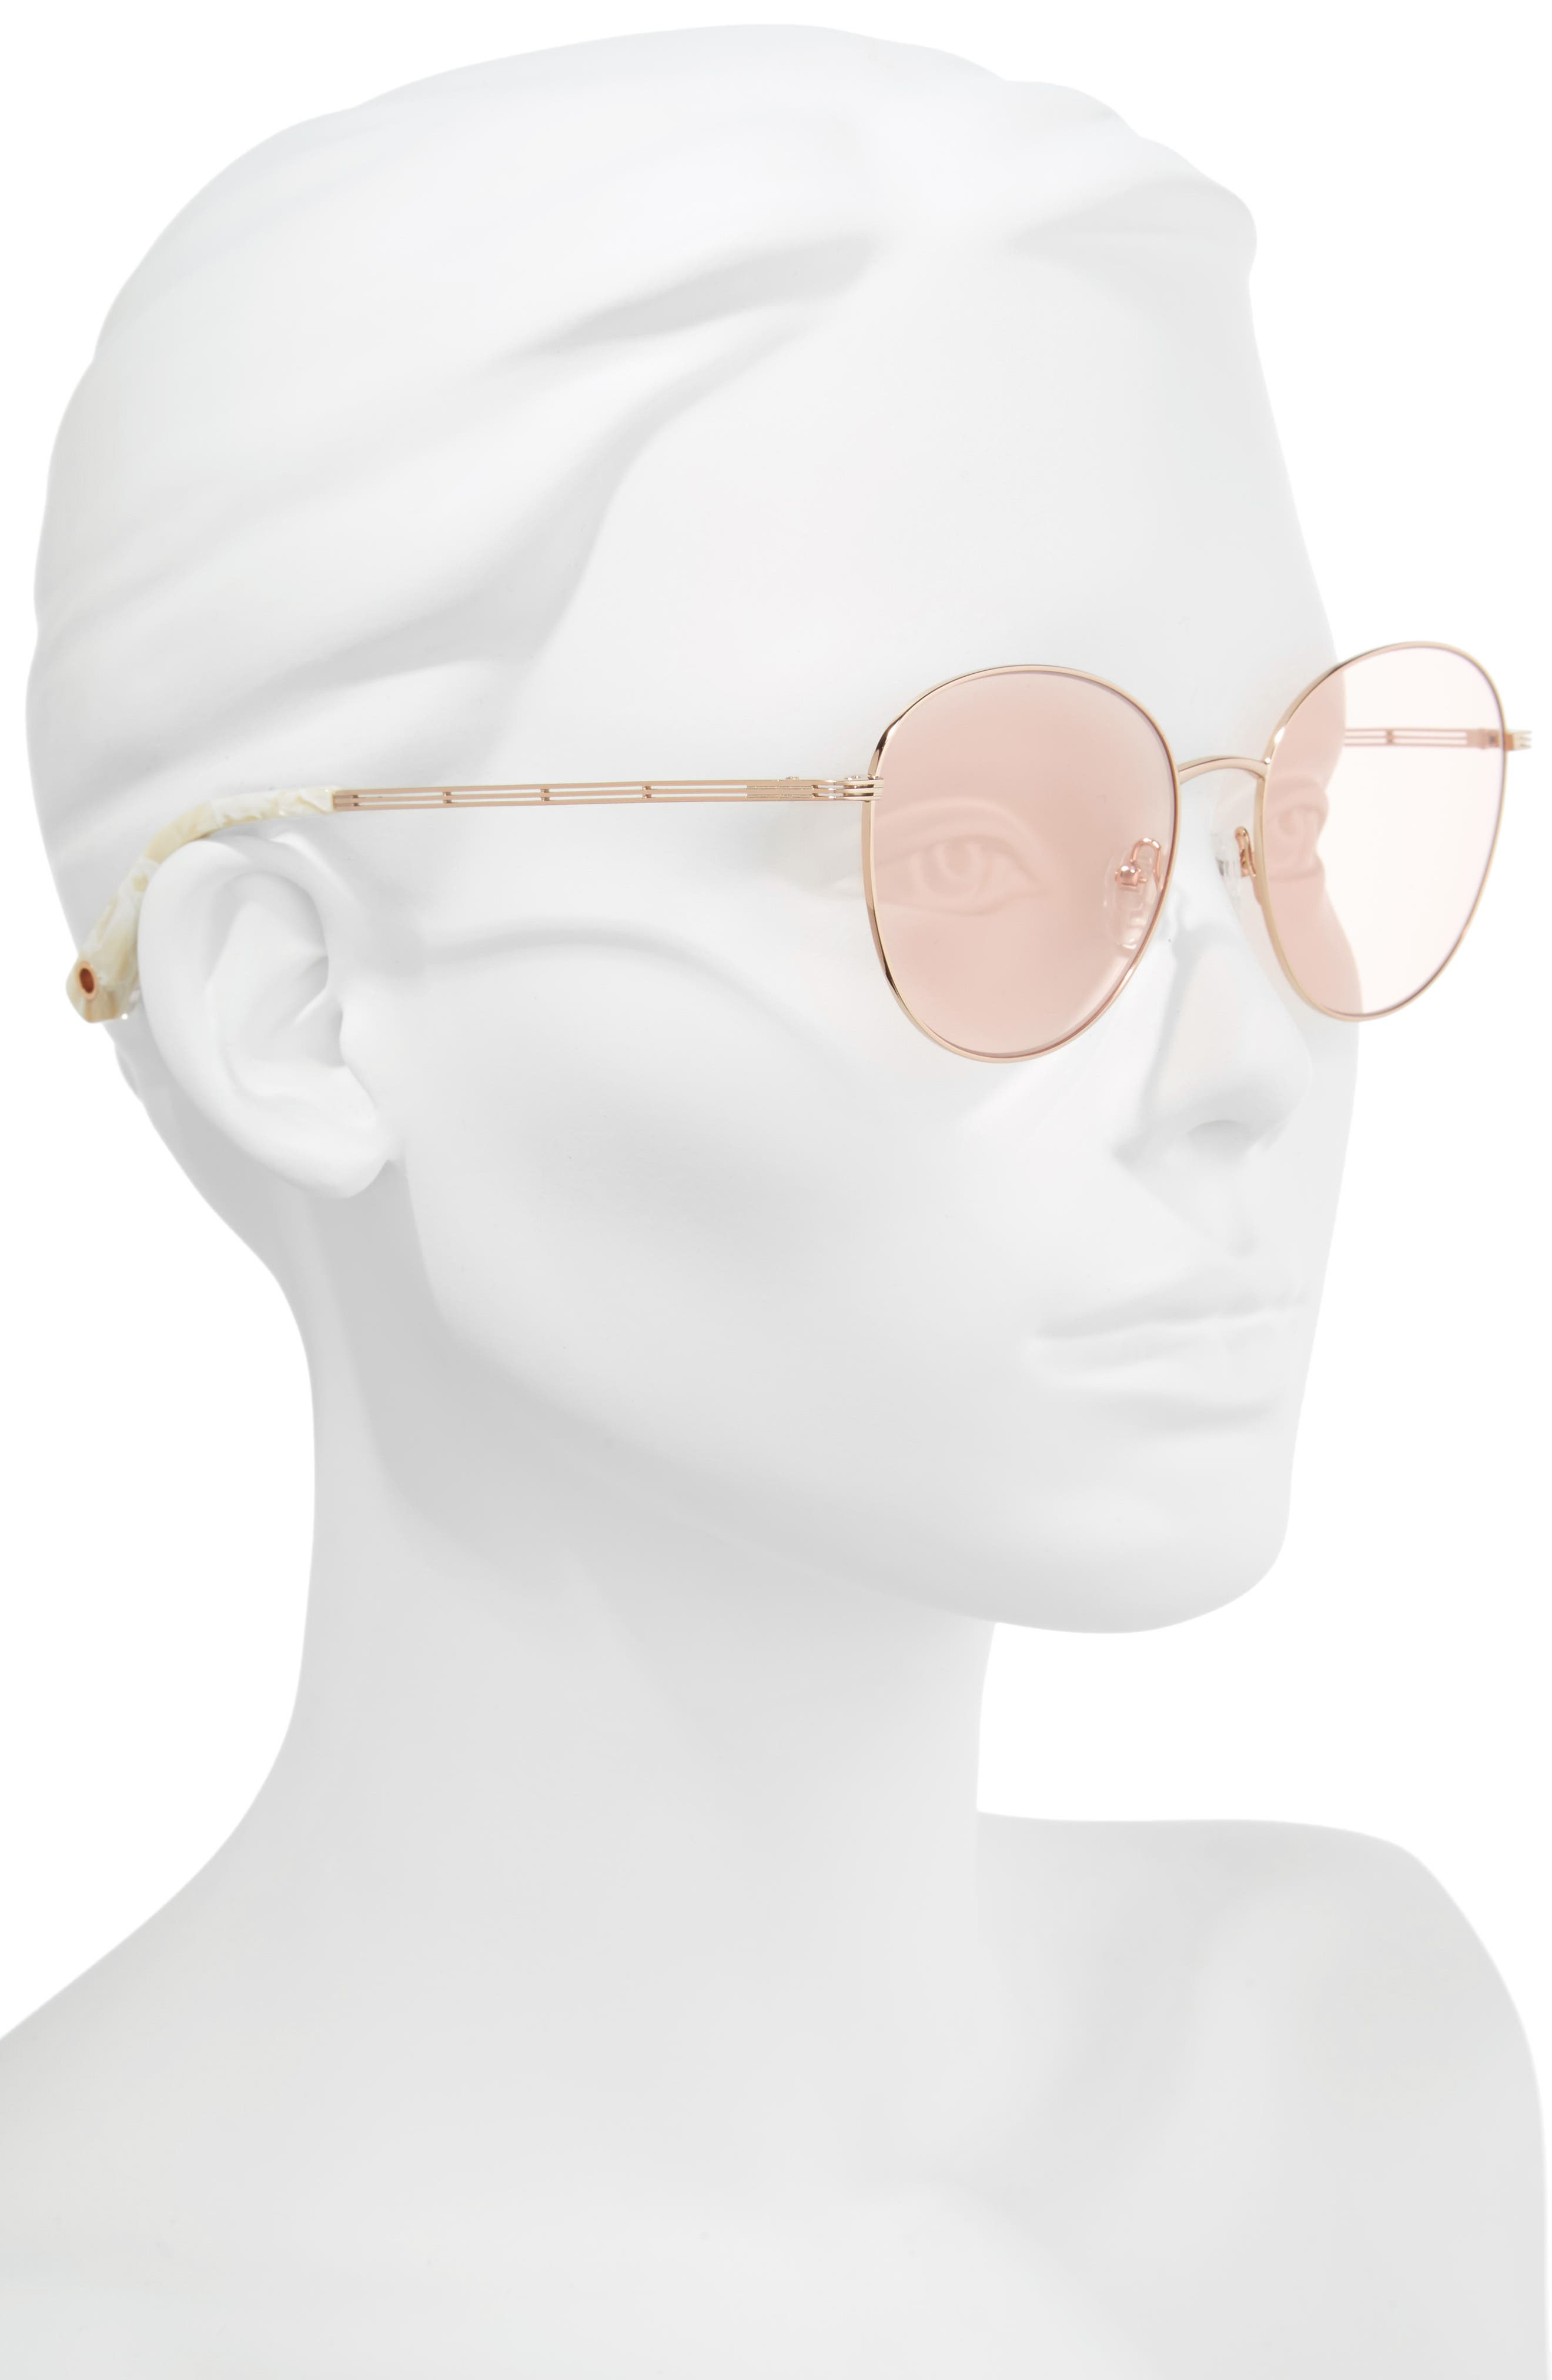 Gilmour 53mm Round Sunglasses & Beaded Chain,                             Alternate thumbnail 6, color,